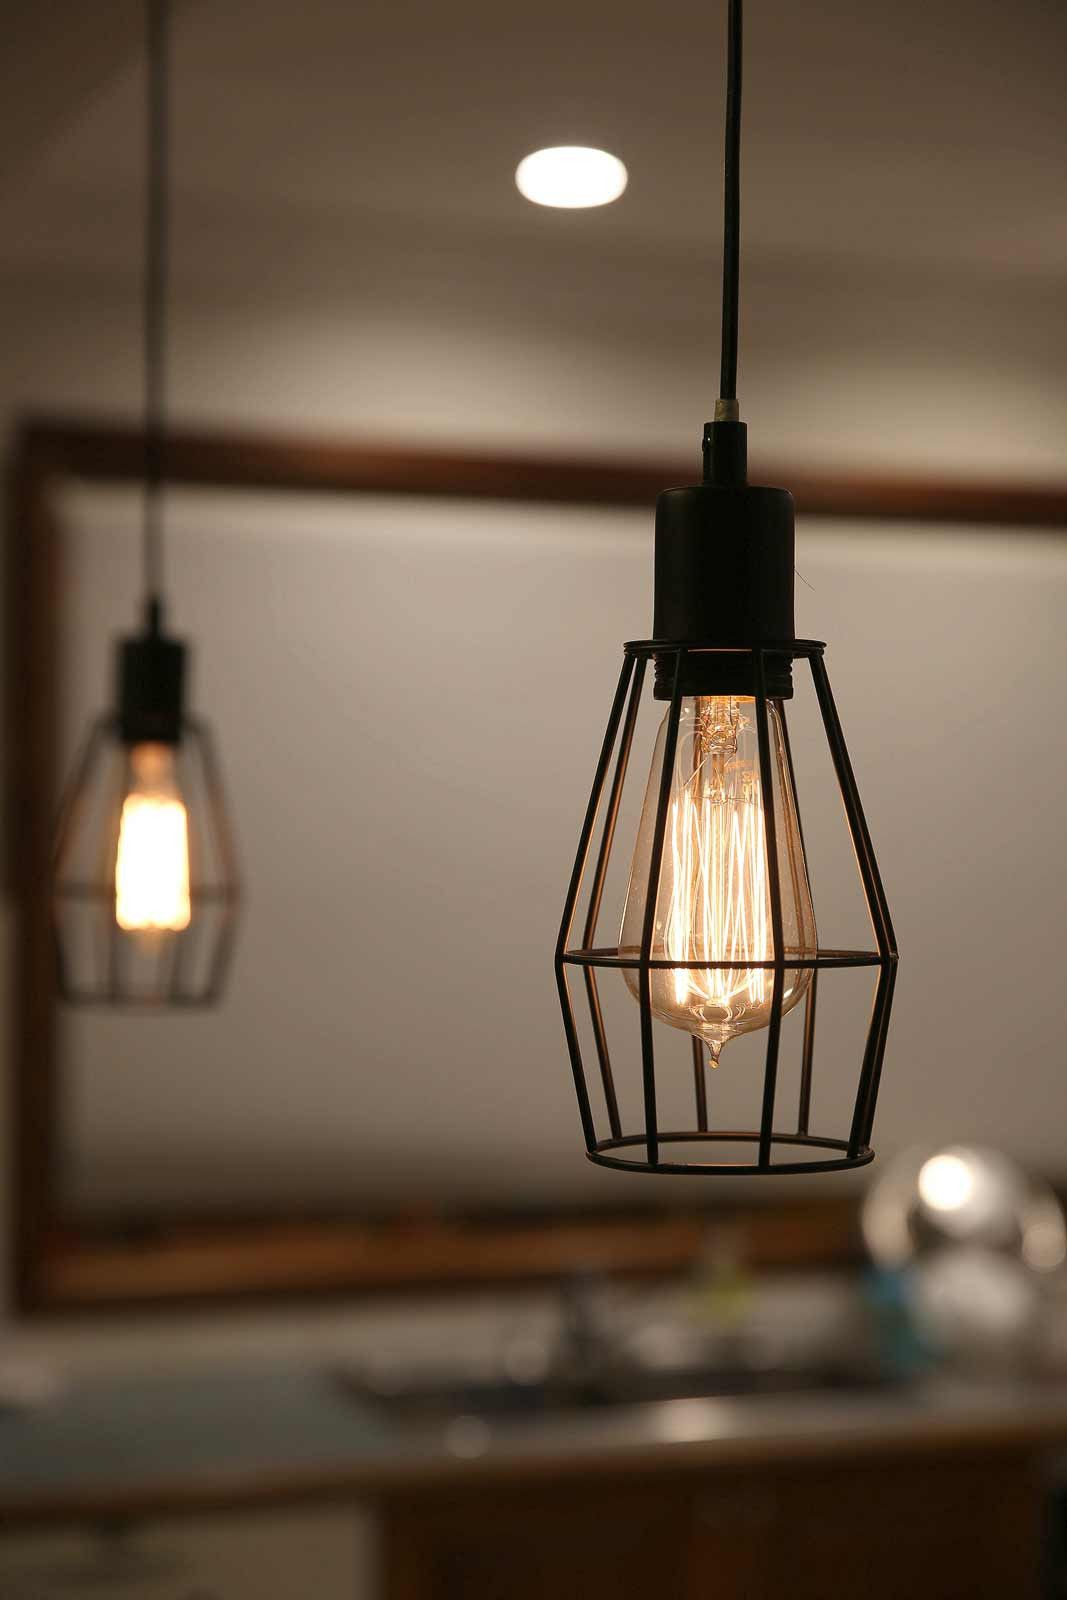 Black Kitchen Light Black Industrial Cage Pendant Light For Kitchen Dining